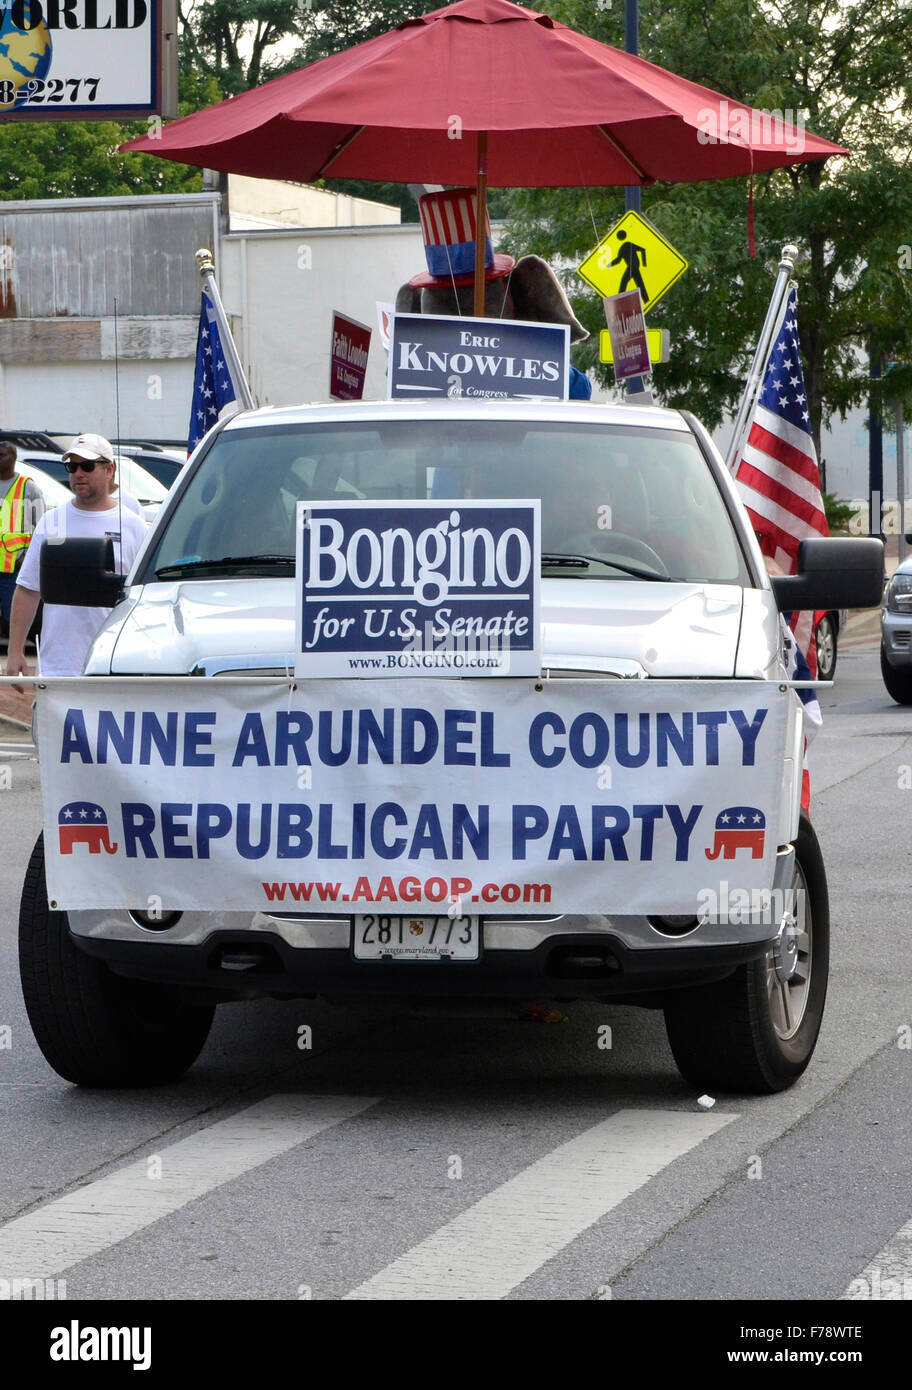 A Republican Party for Anne Arundel County in a Independance Day parade in Annapolis, Maryland - Stock Image